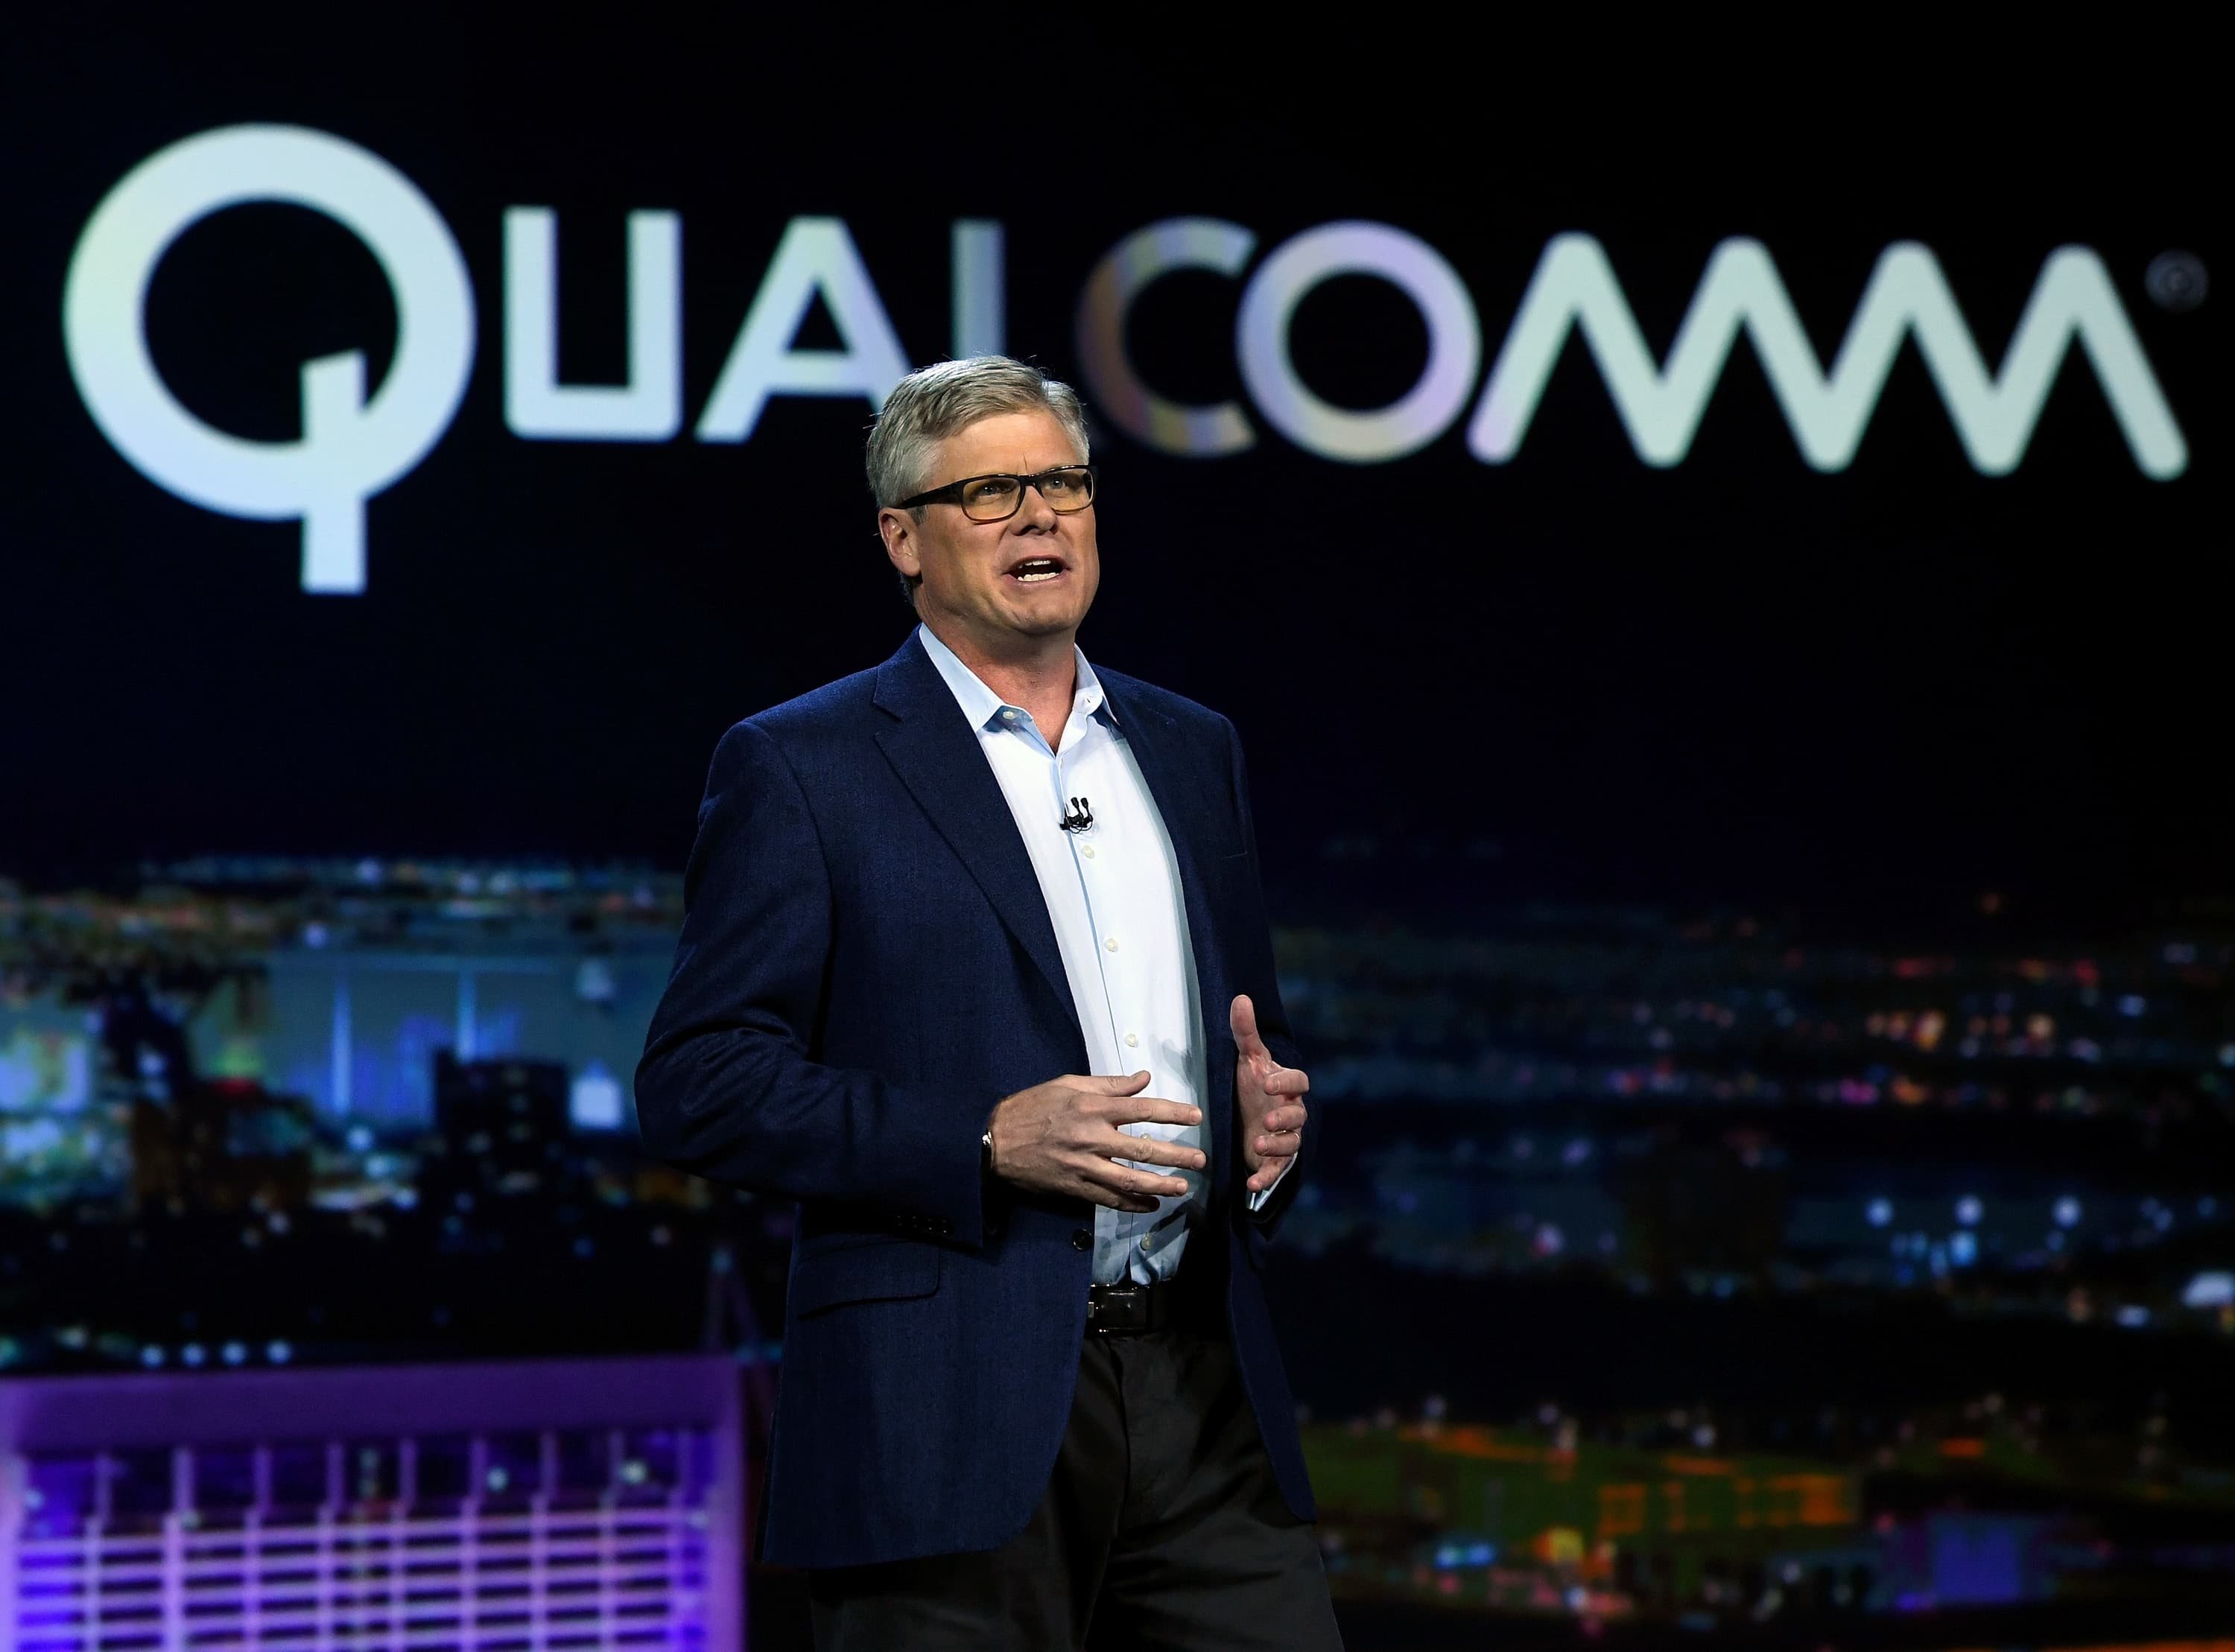 Qualcomm Inc. CEO Steve Mollenkopf speaks during a keynote address at CES 2017 on January 6, 2017 in Las Vegas, Nevada.